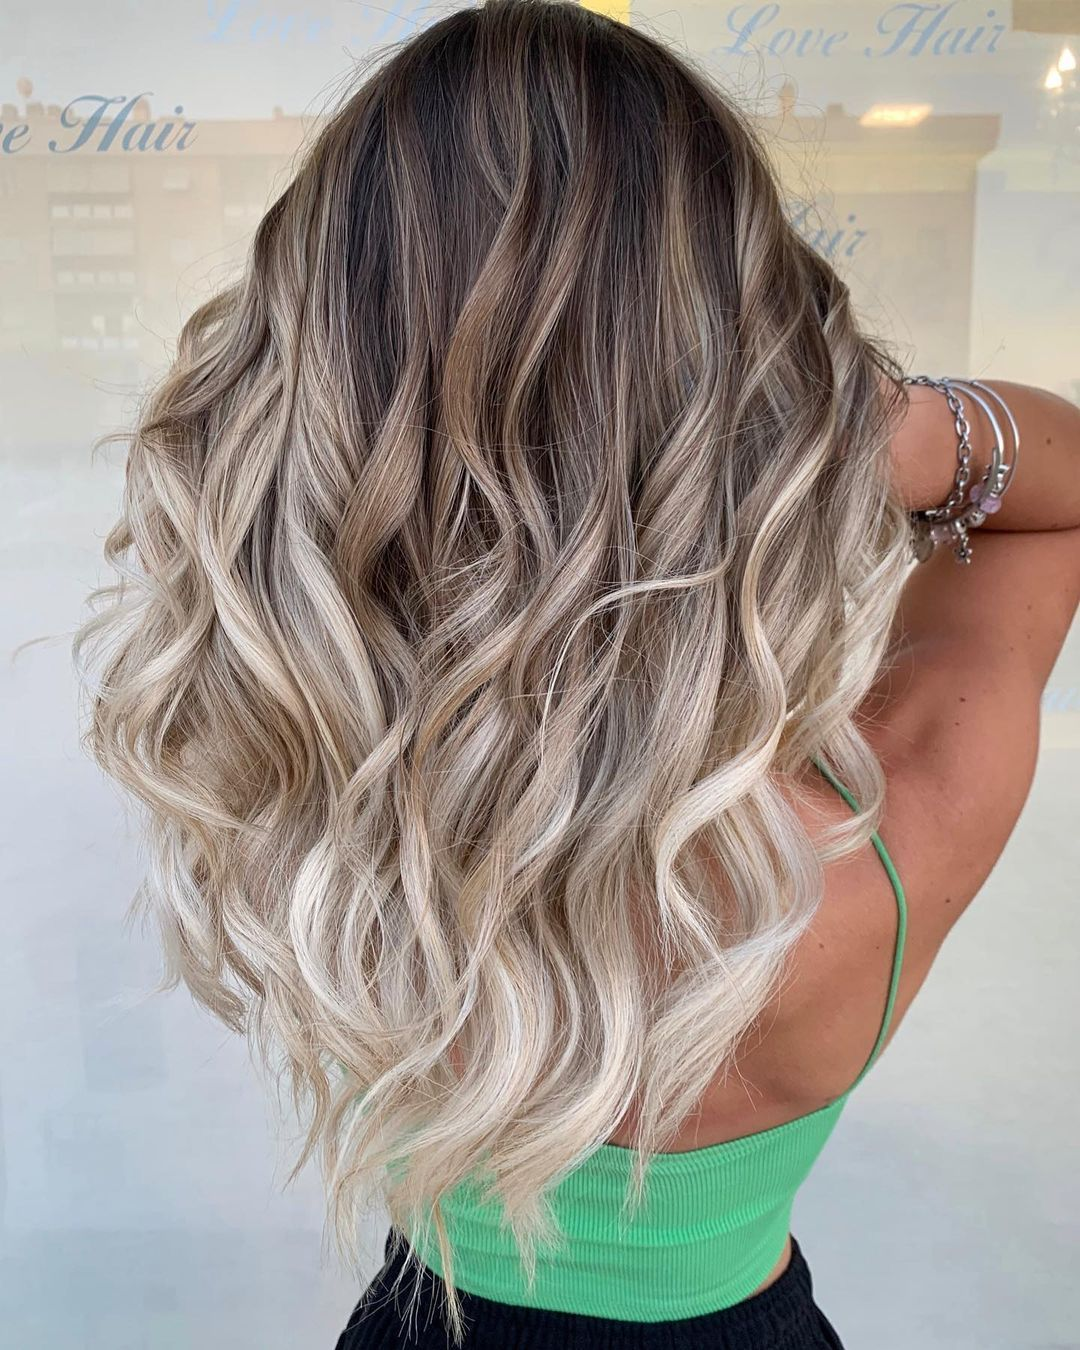 50 Amazing Blonde Balayage Hair Color Ideas for 20